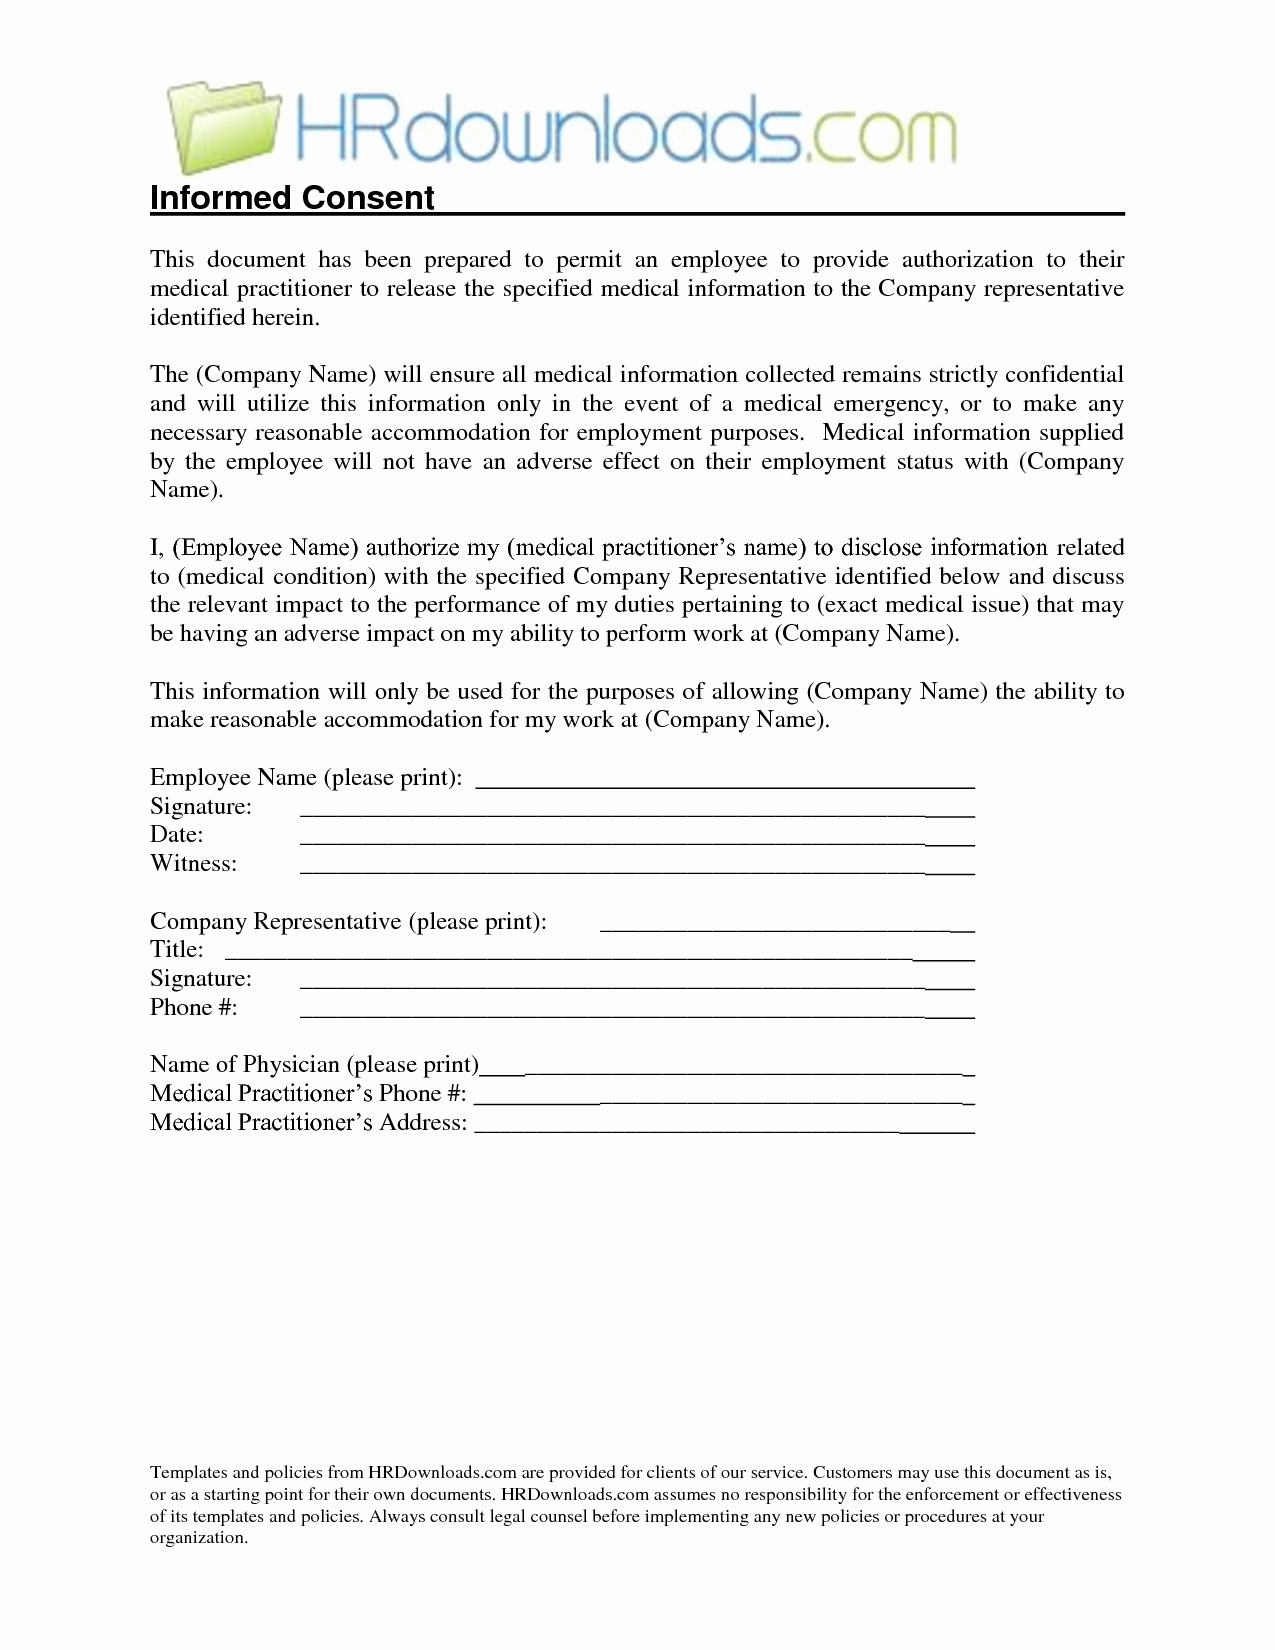 Medical Release forms Template Elegant Medical Release Information form Template